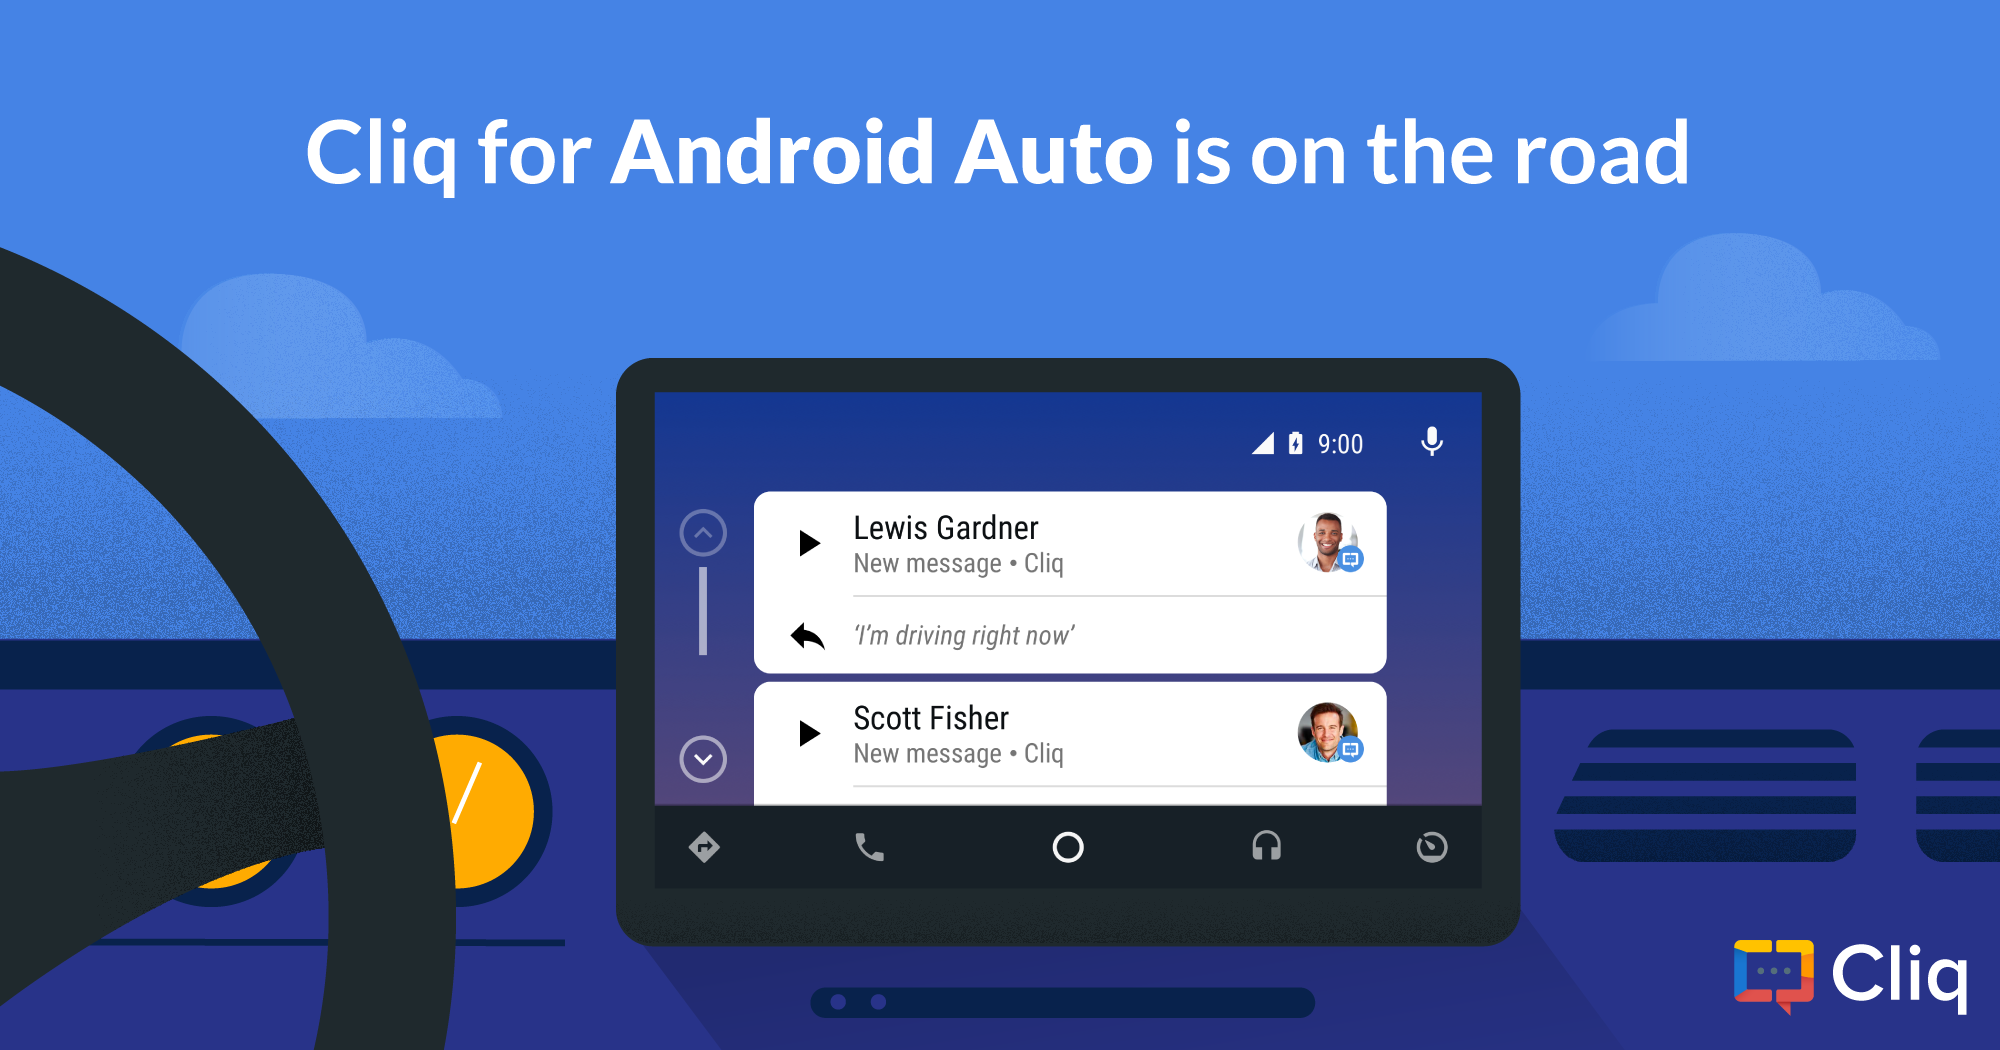 Cliq for Android Auto is on the road